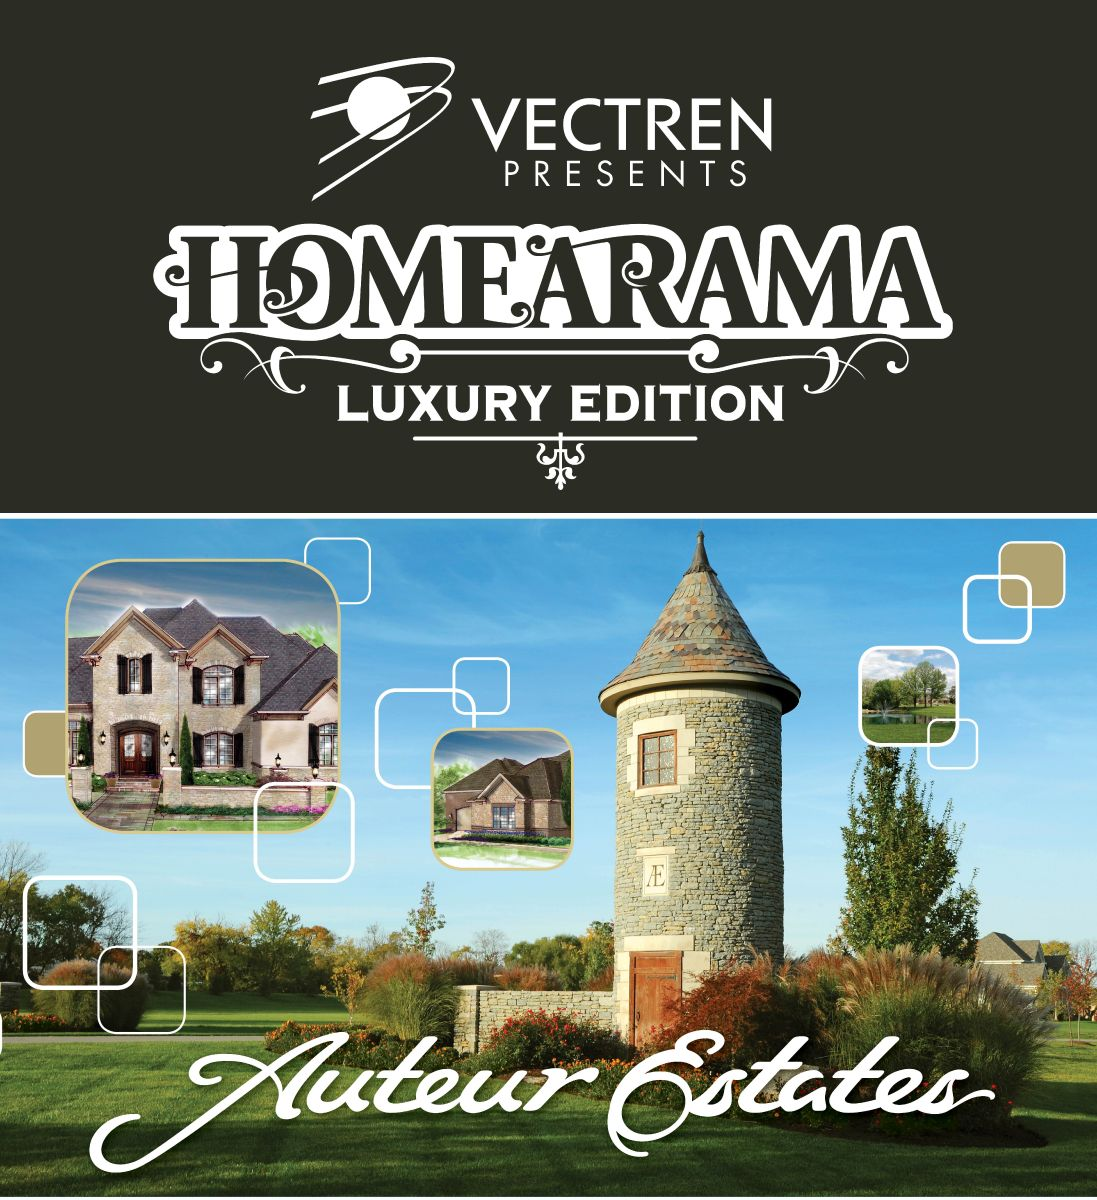 2014 Homearama - Invert logo with tower.jpg